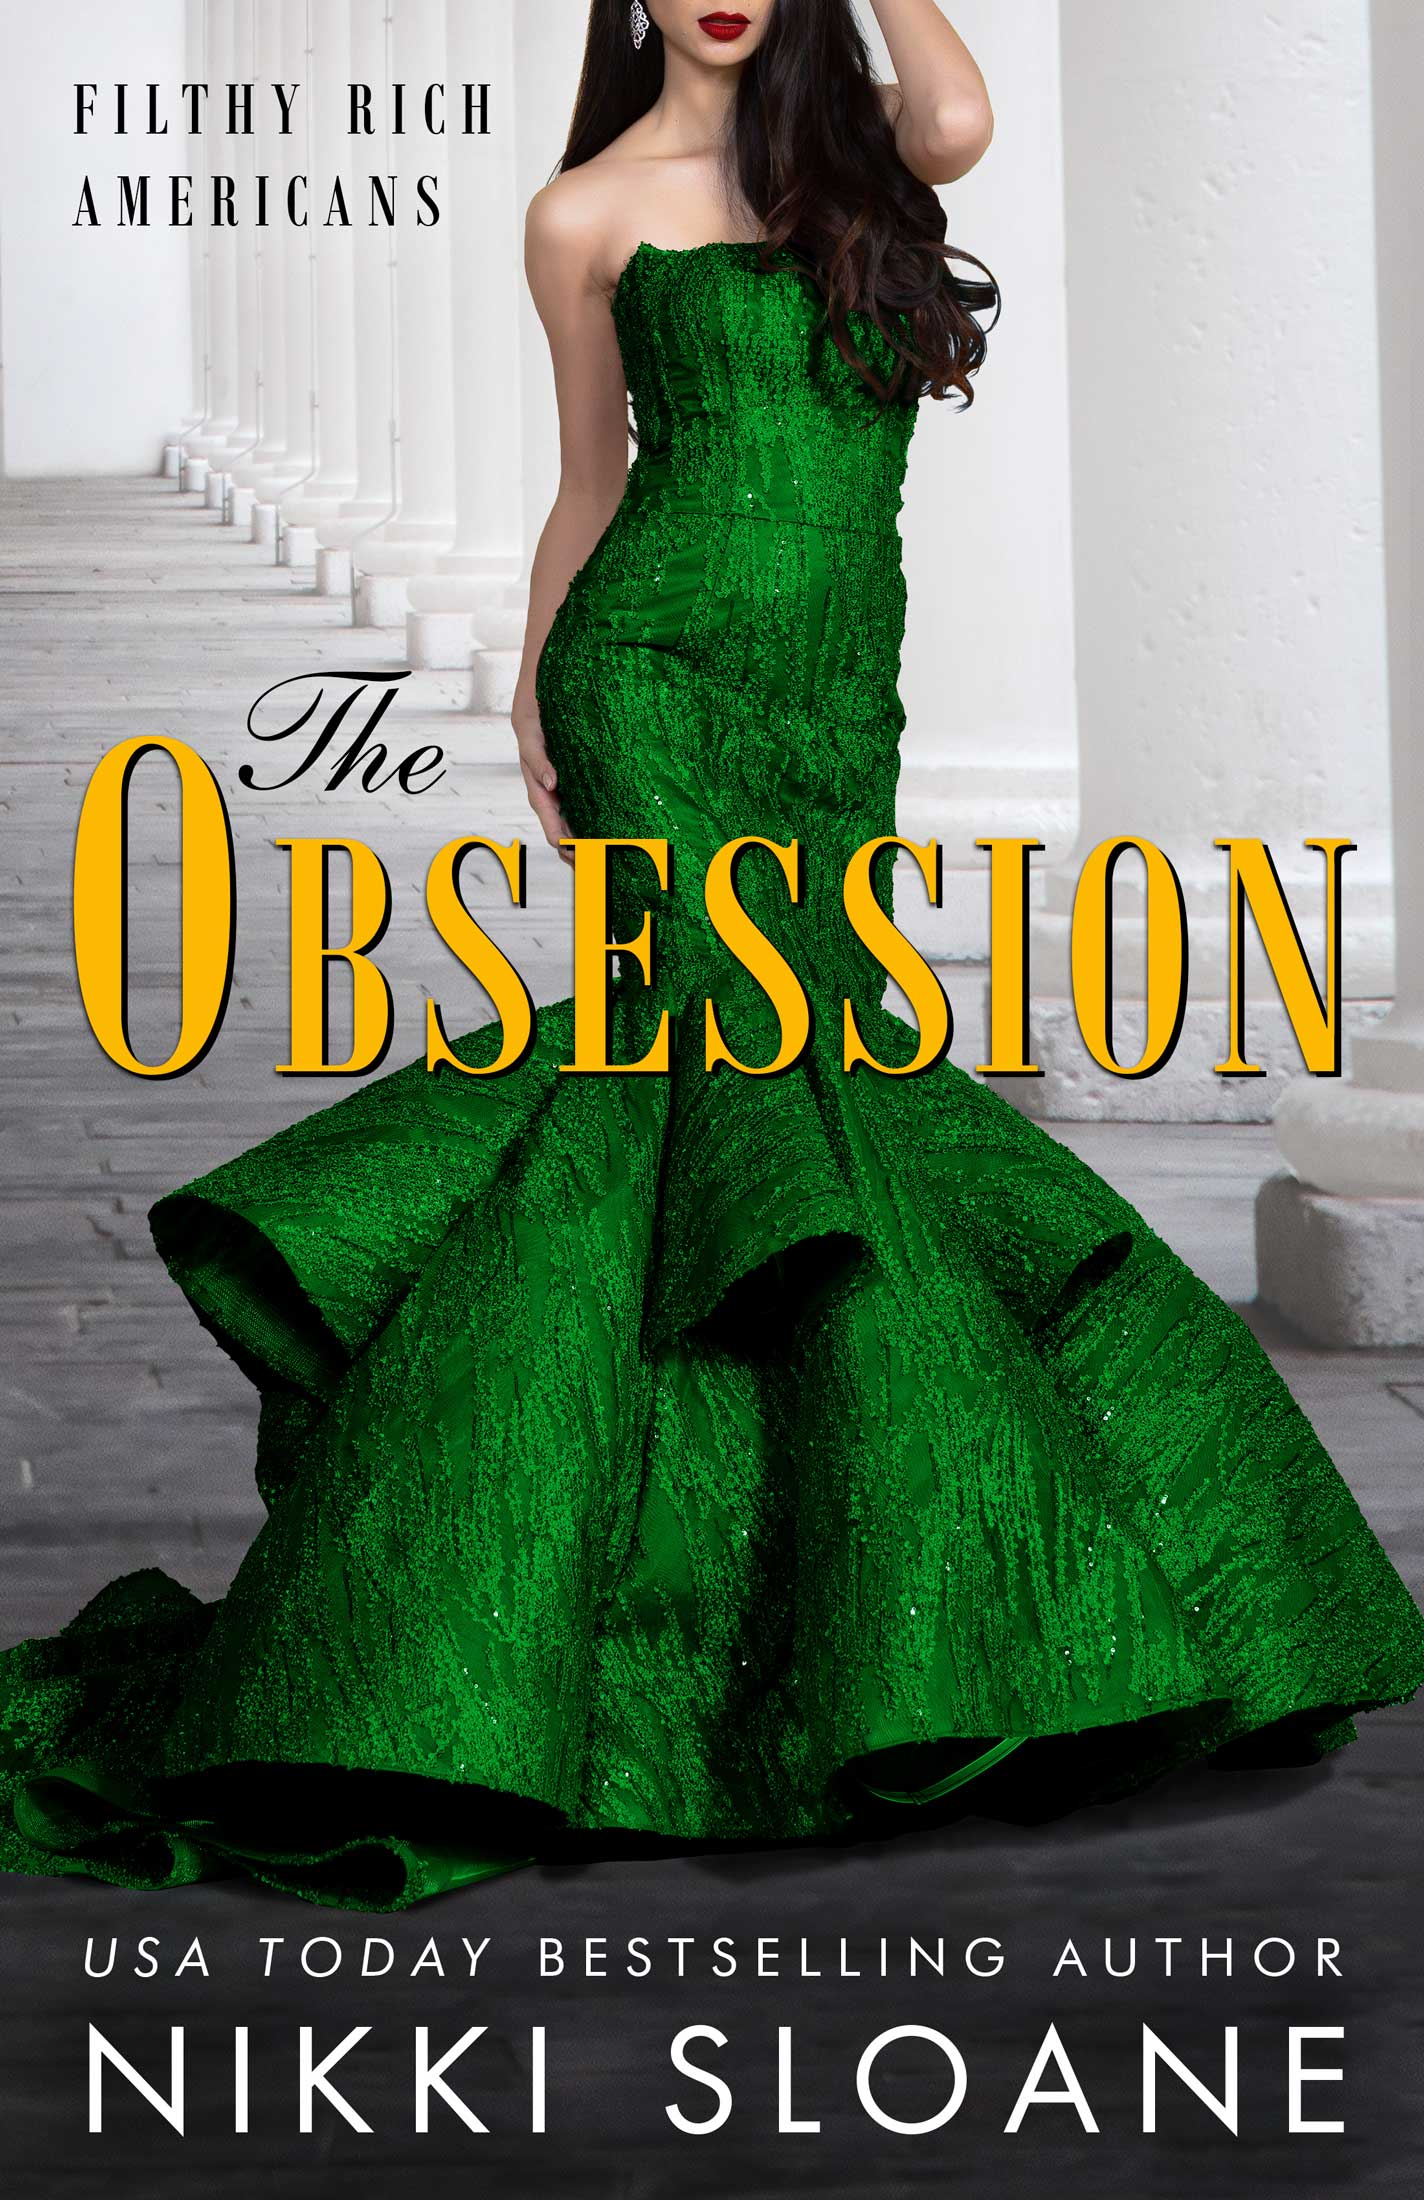 Nikki Sloane - Filthy Rich Americans 2 - The Obsession